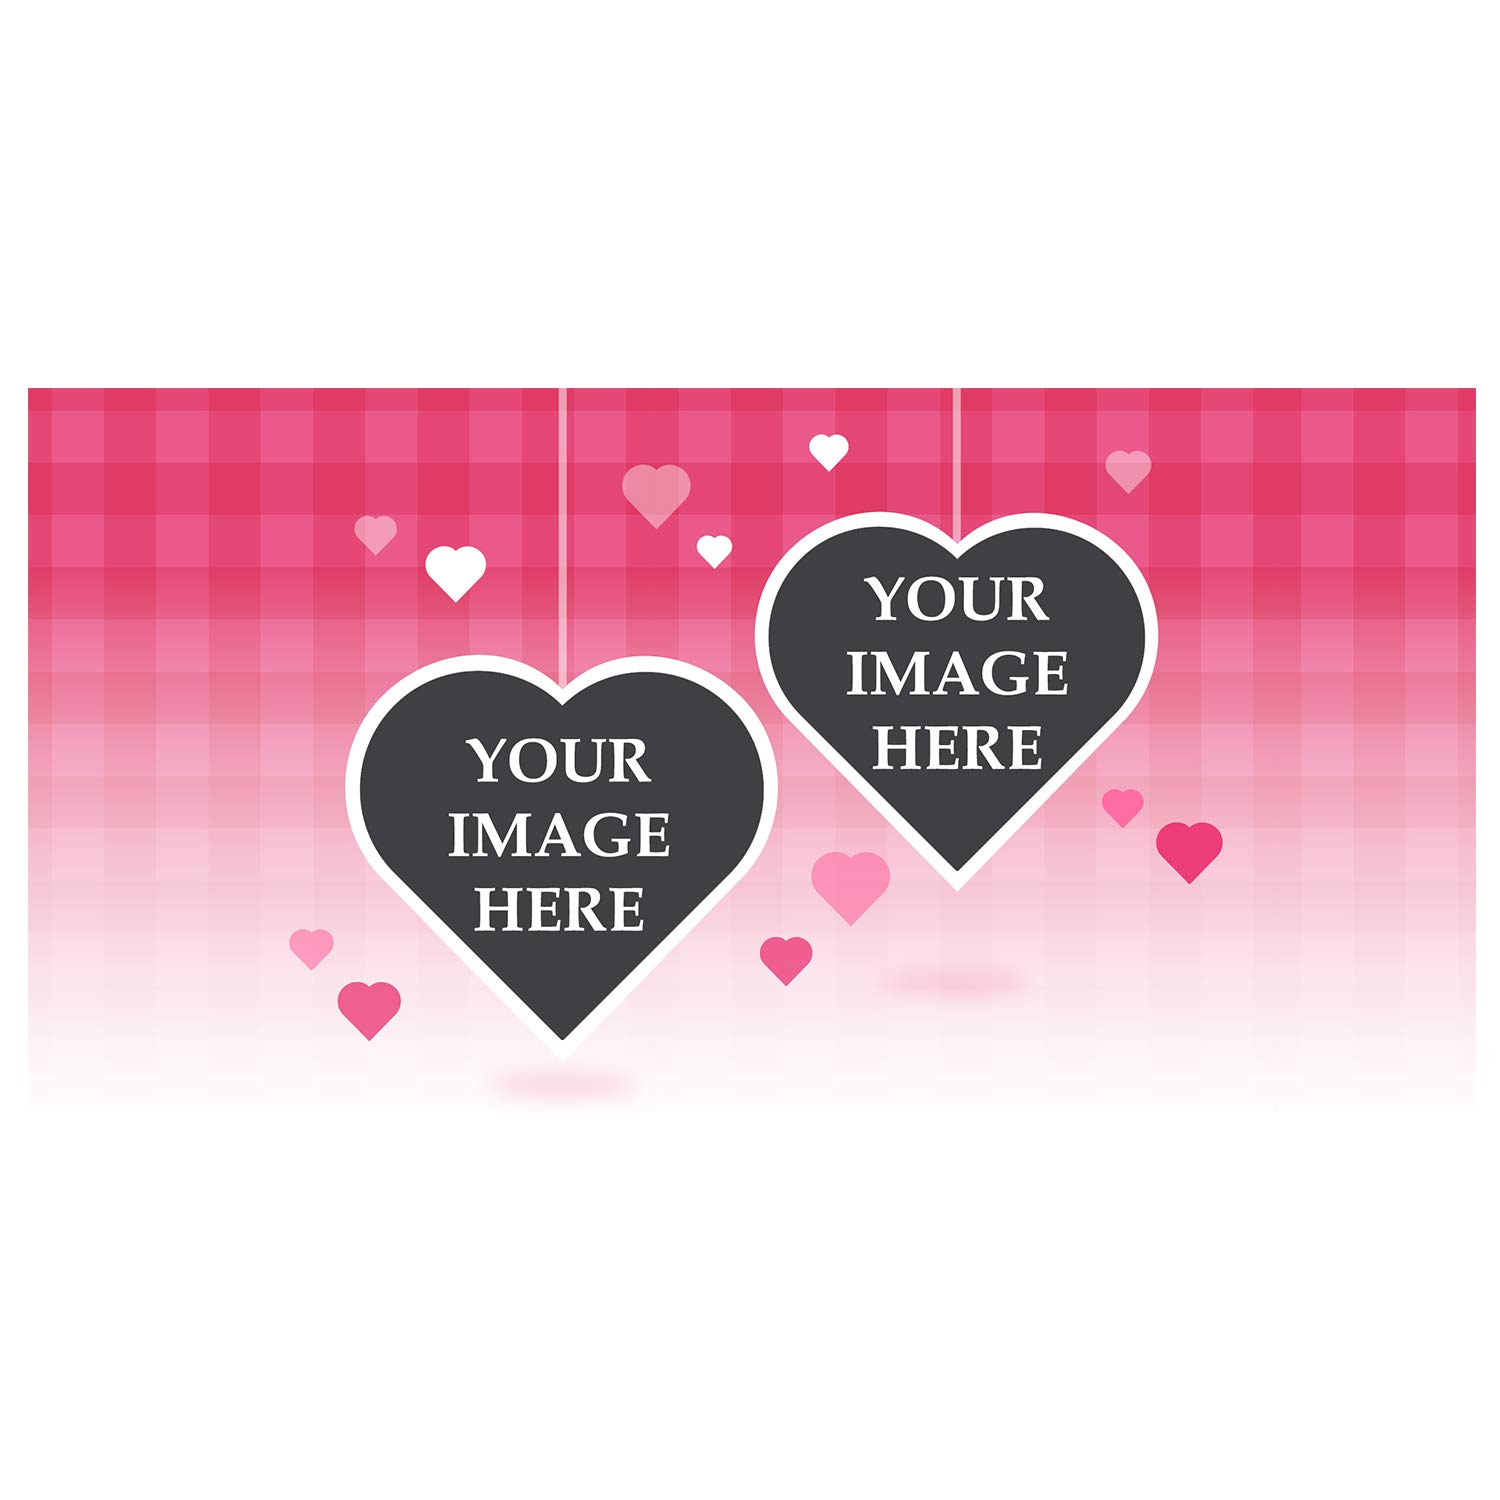 BANNER BUZZ MAKE IT VISIBLE Custom Magnetic Picture Hanging Pink Hearts Pocket Frame, Self-Adhesive Pocket Photo Magnets for Refrigerator, Valentine Day Gifts & More (12'' X 24'')